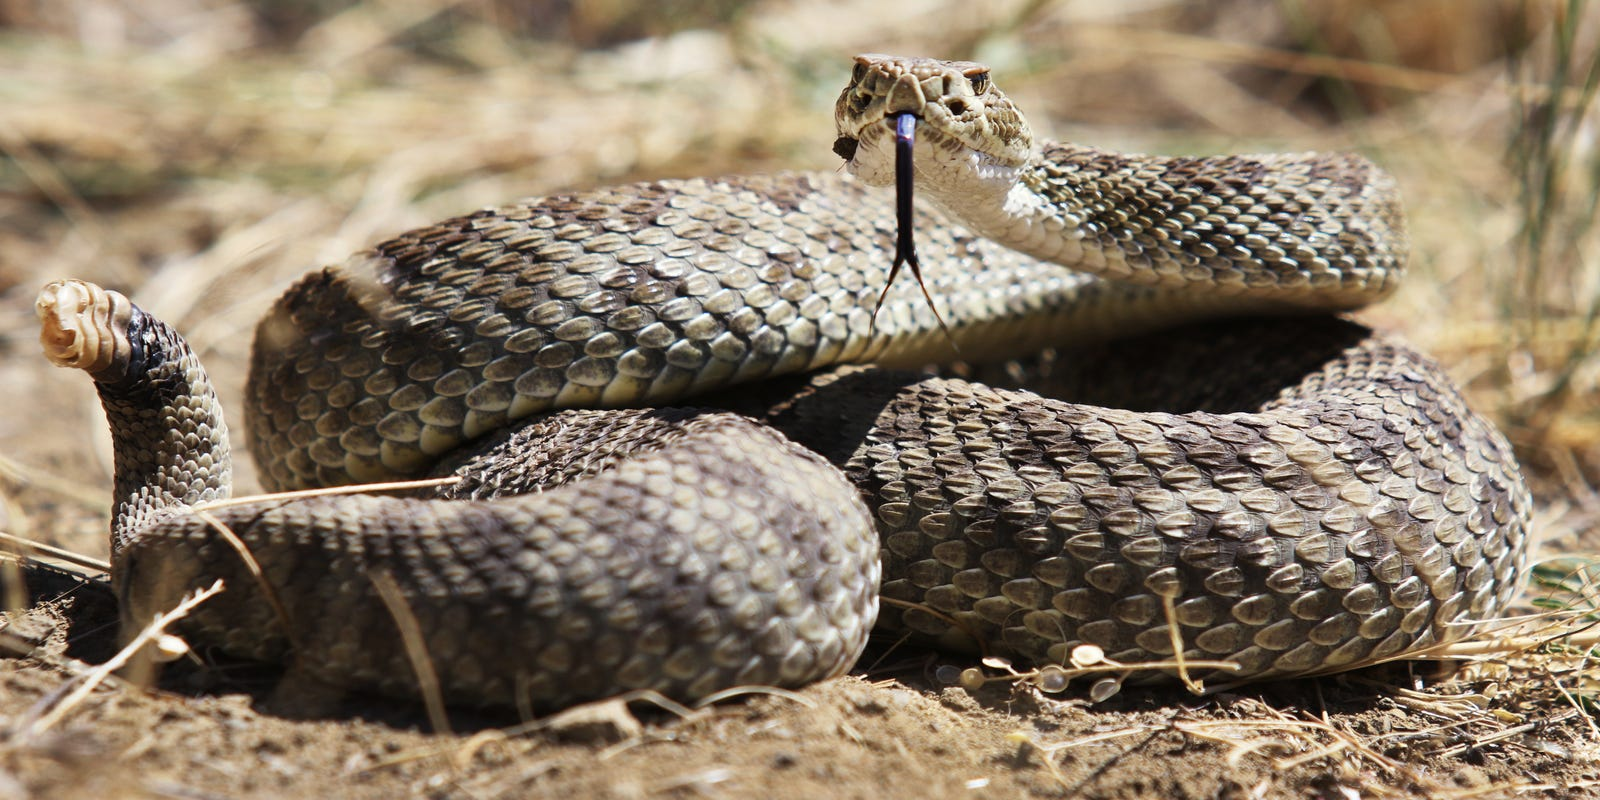 100s of rattlesnakes have been spotted in Central Pa  Here's